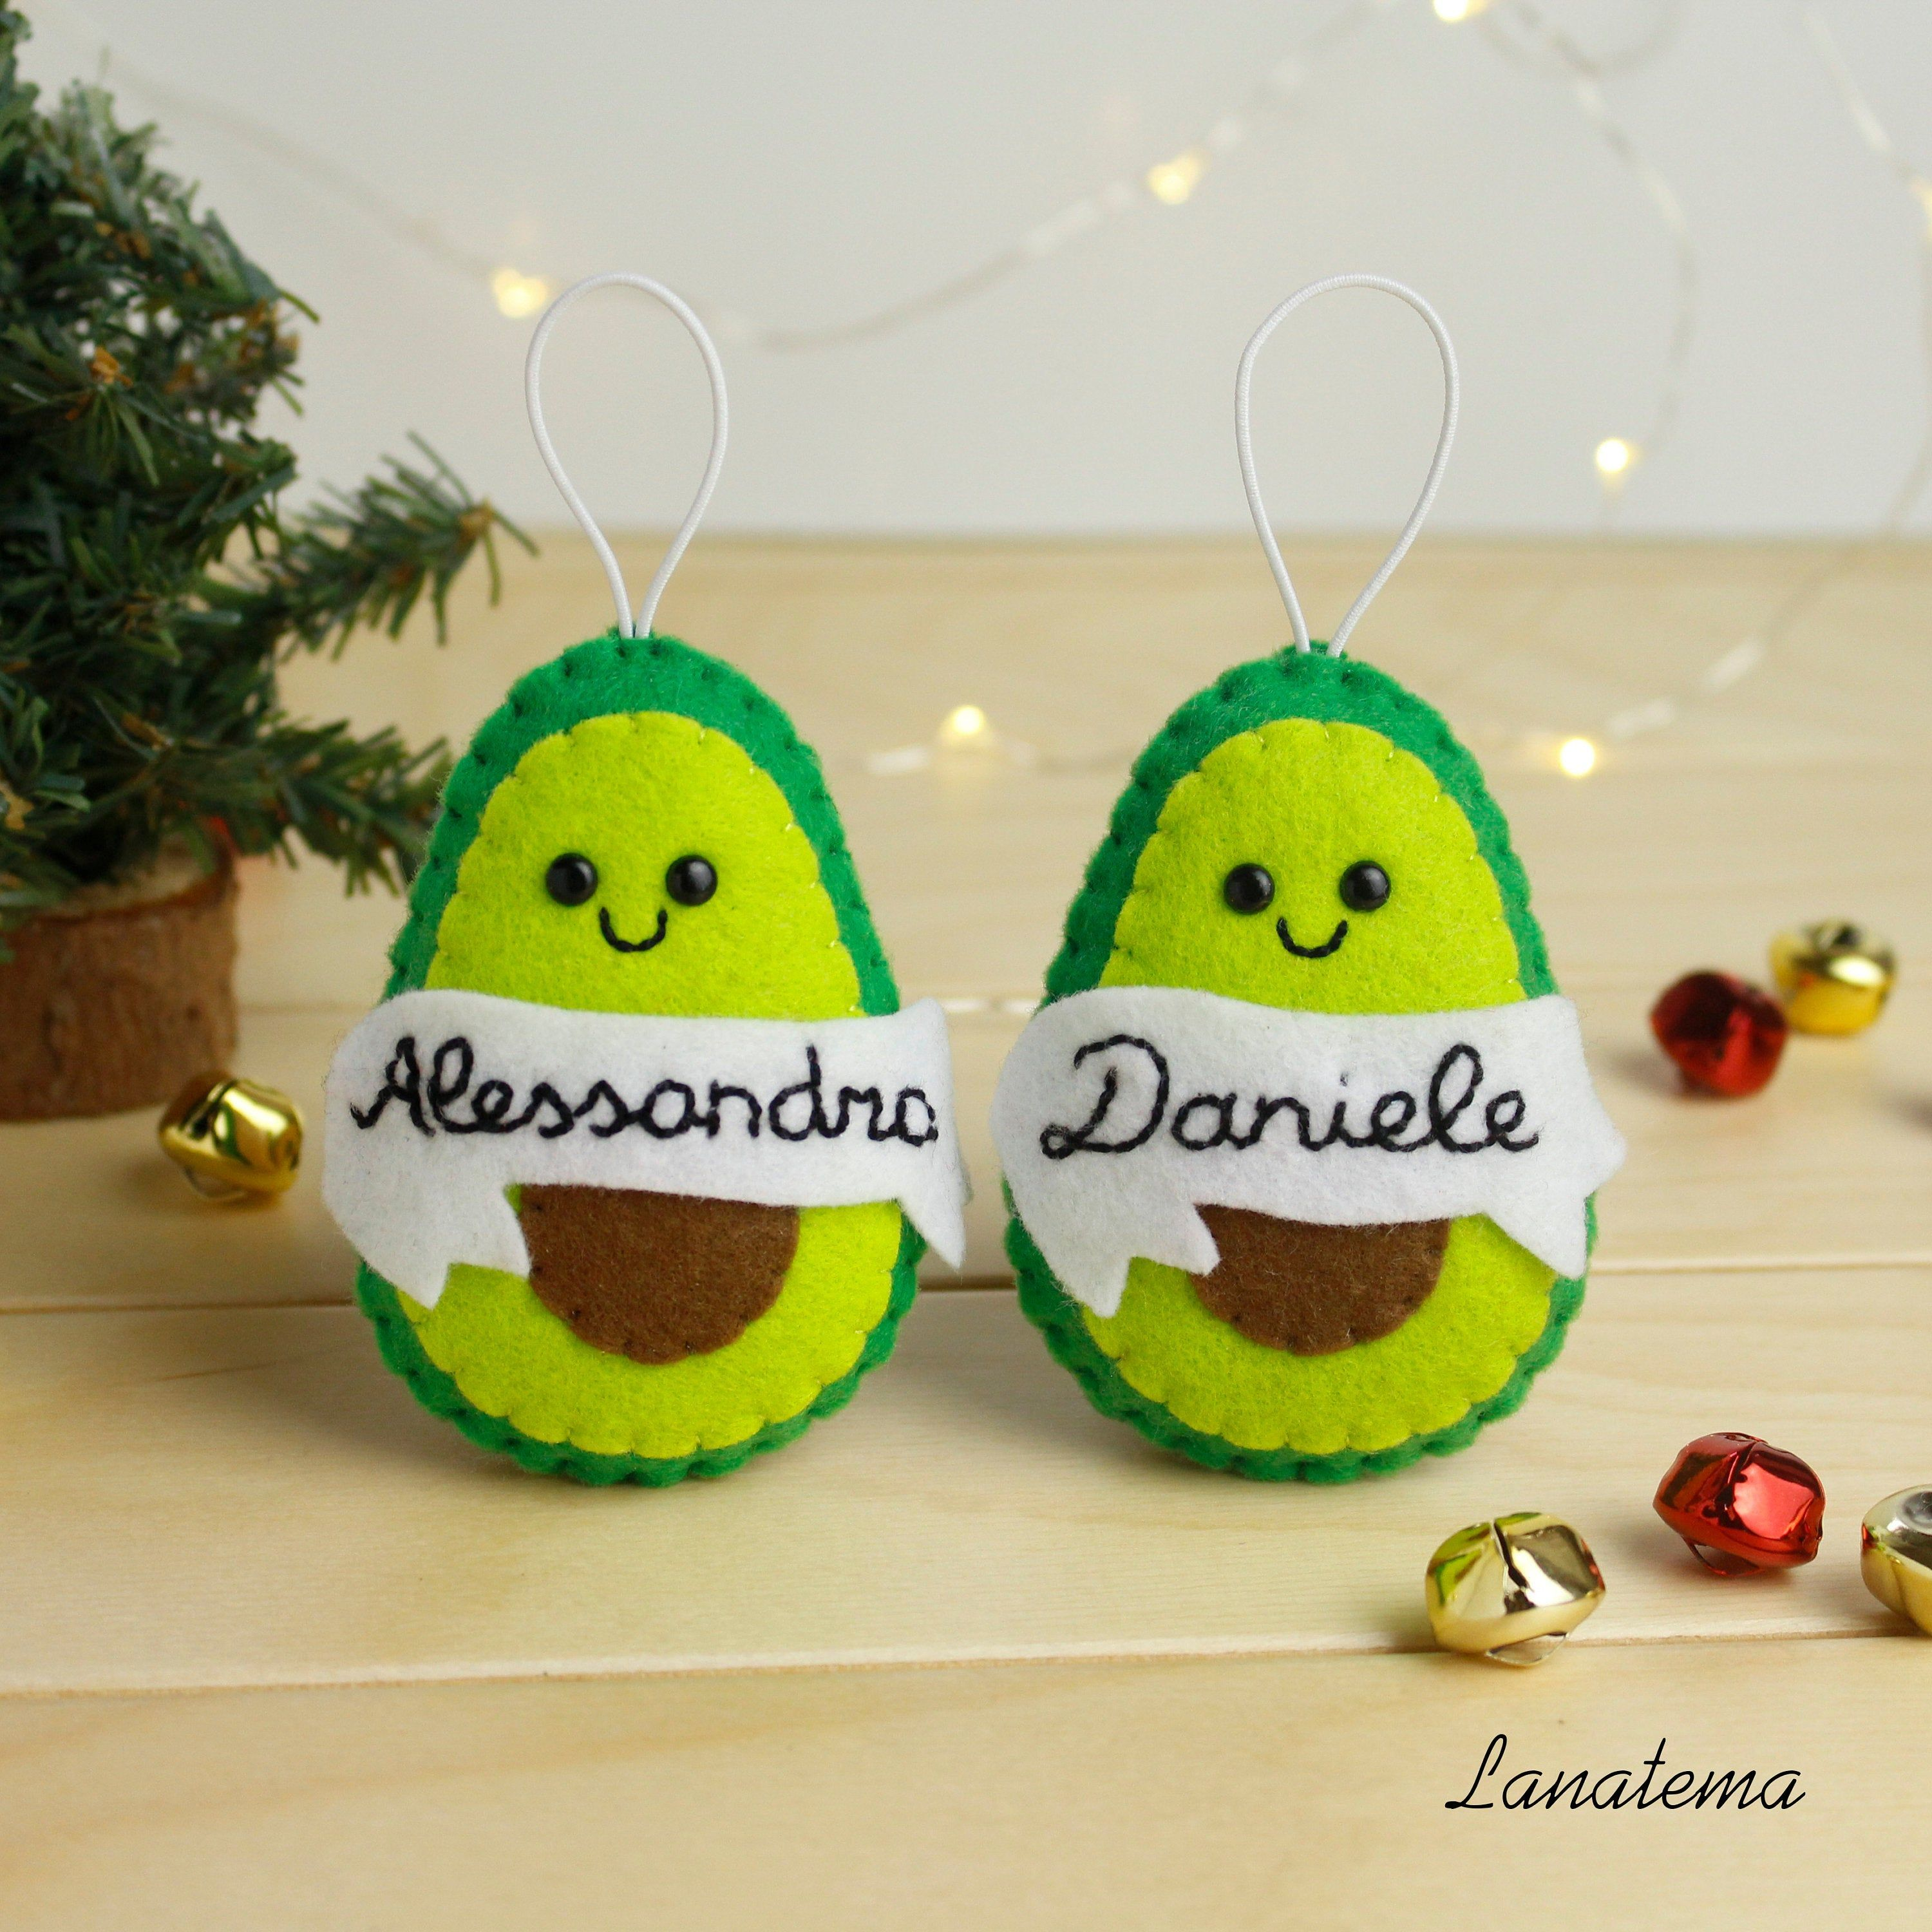 Christmas Gifts For Parents From Infants.Personalized Avocado Ornament